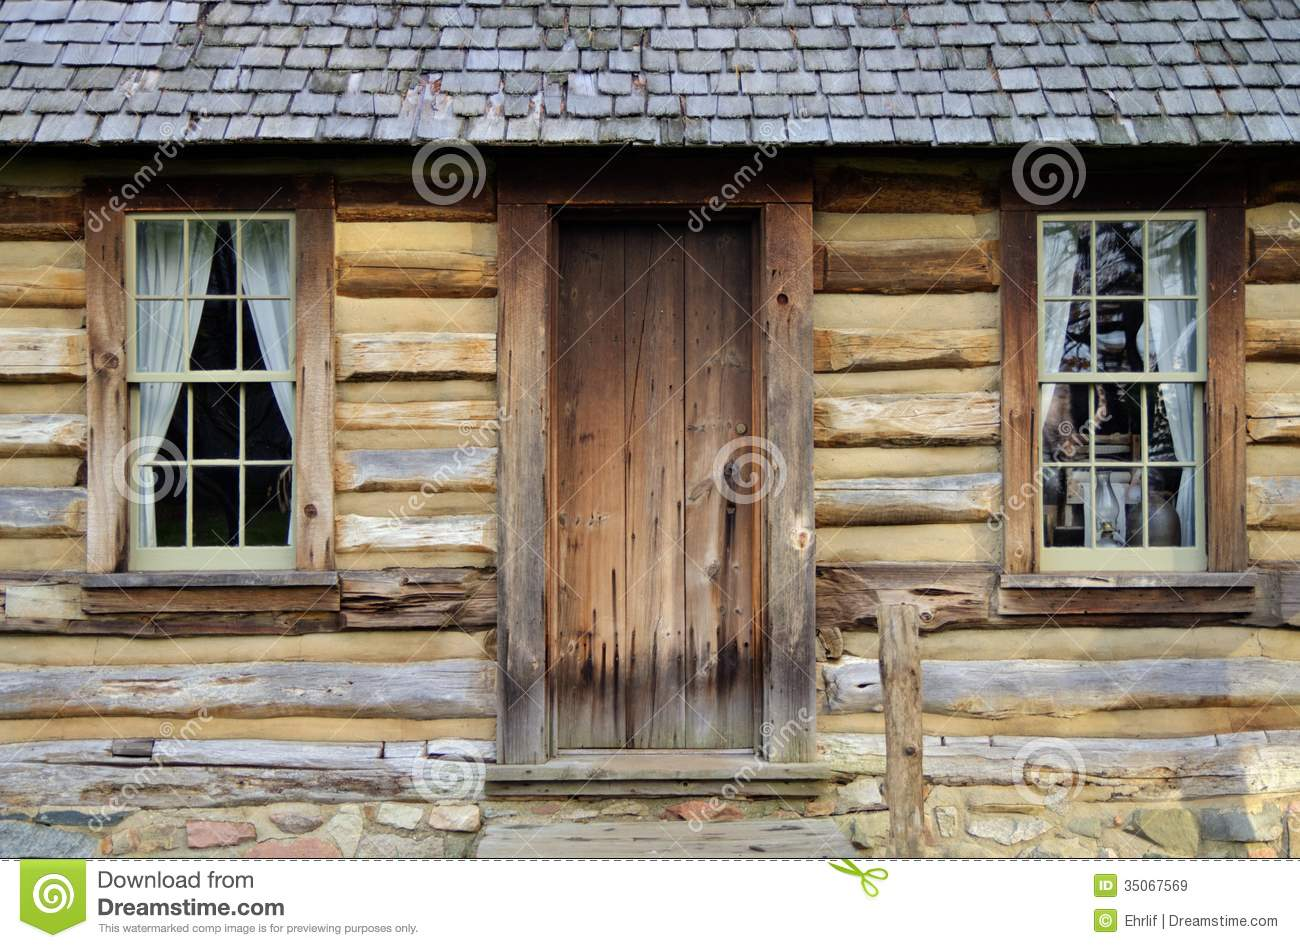 Fabulous Welcome Home Royalty Free Stock Images Image 35067569 Inspirational Interior Design Netriciaus